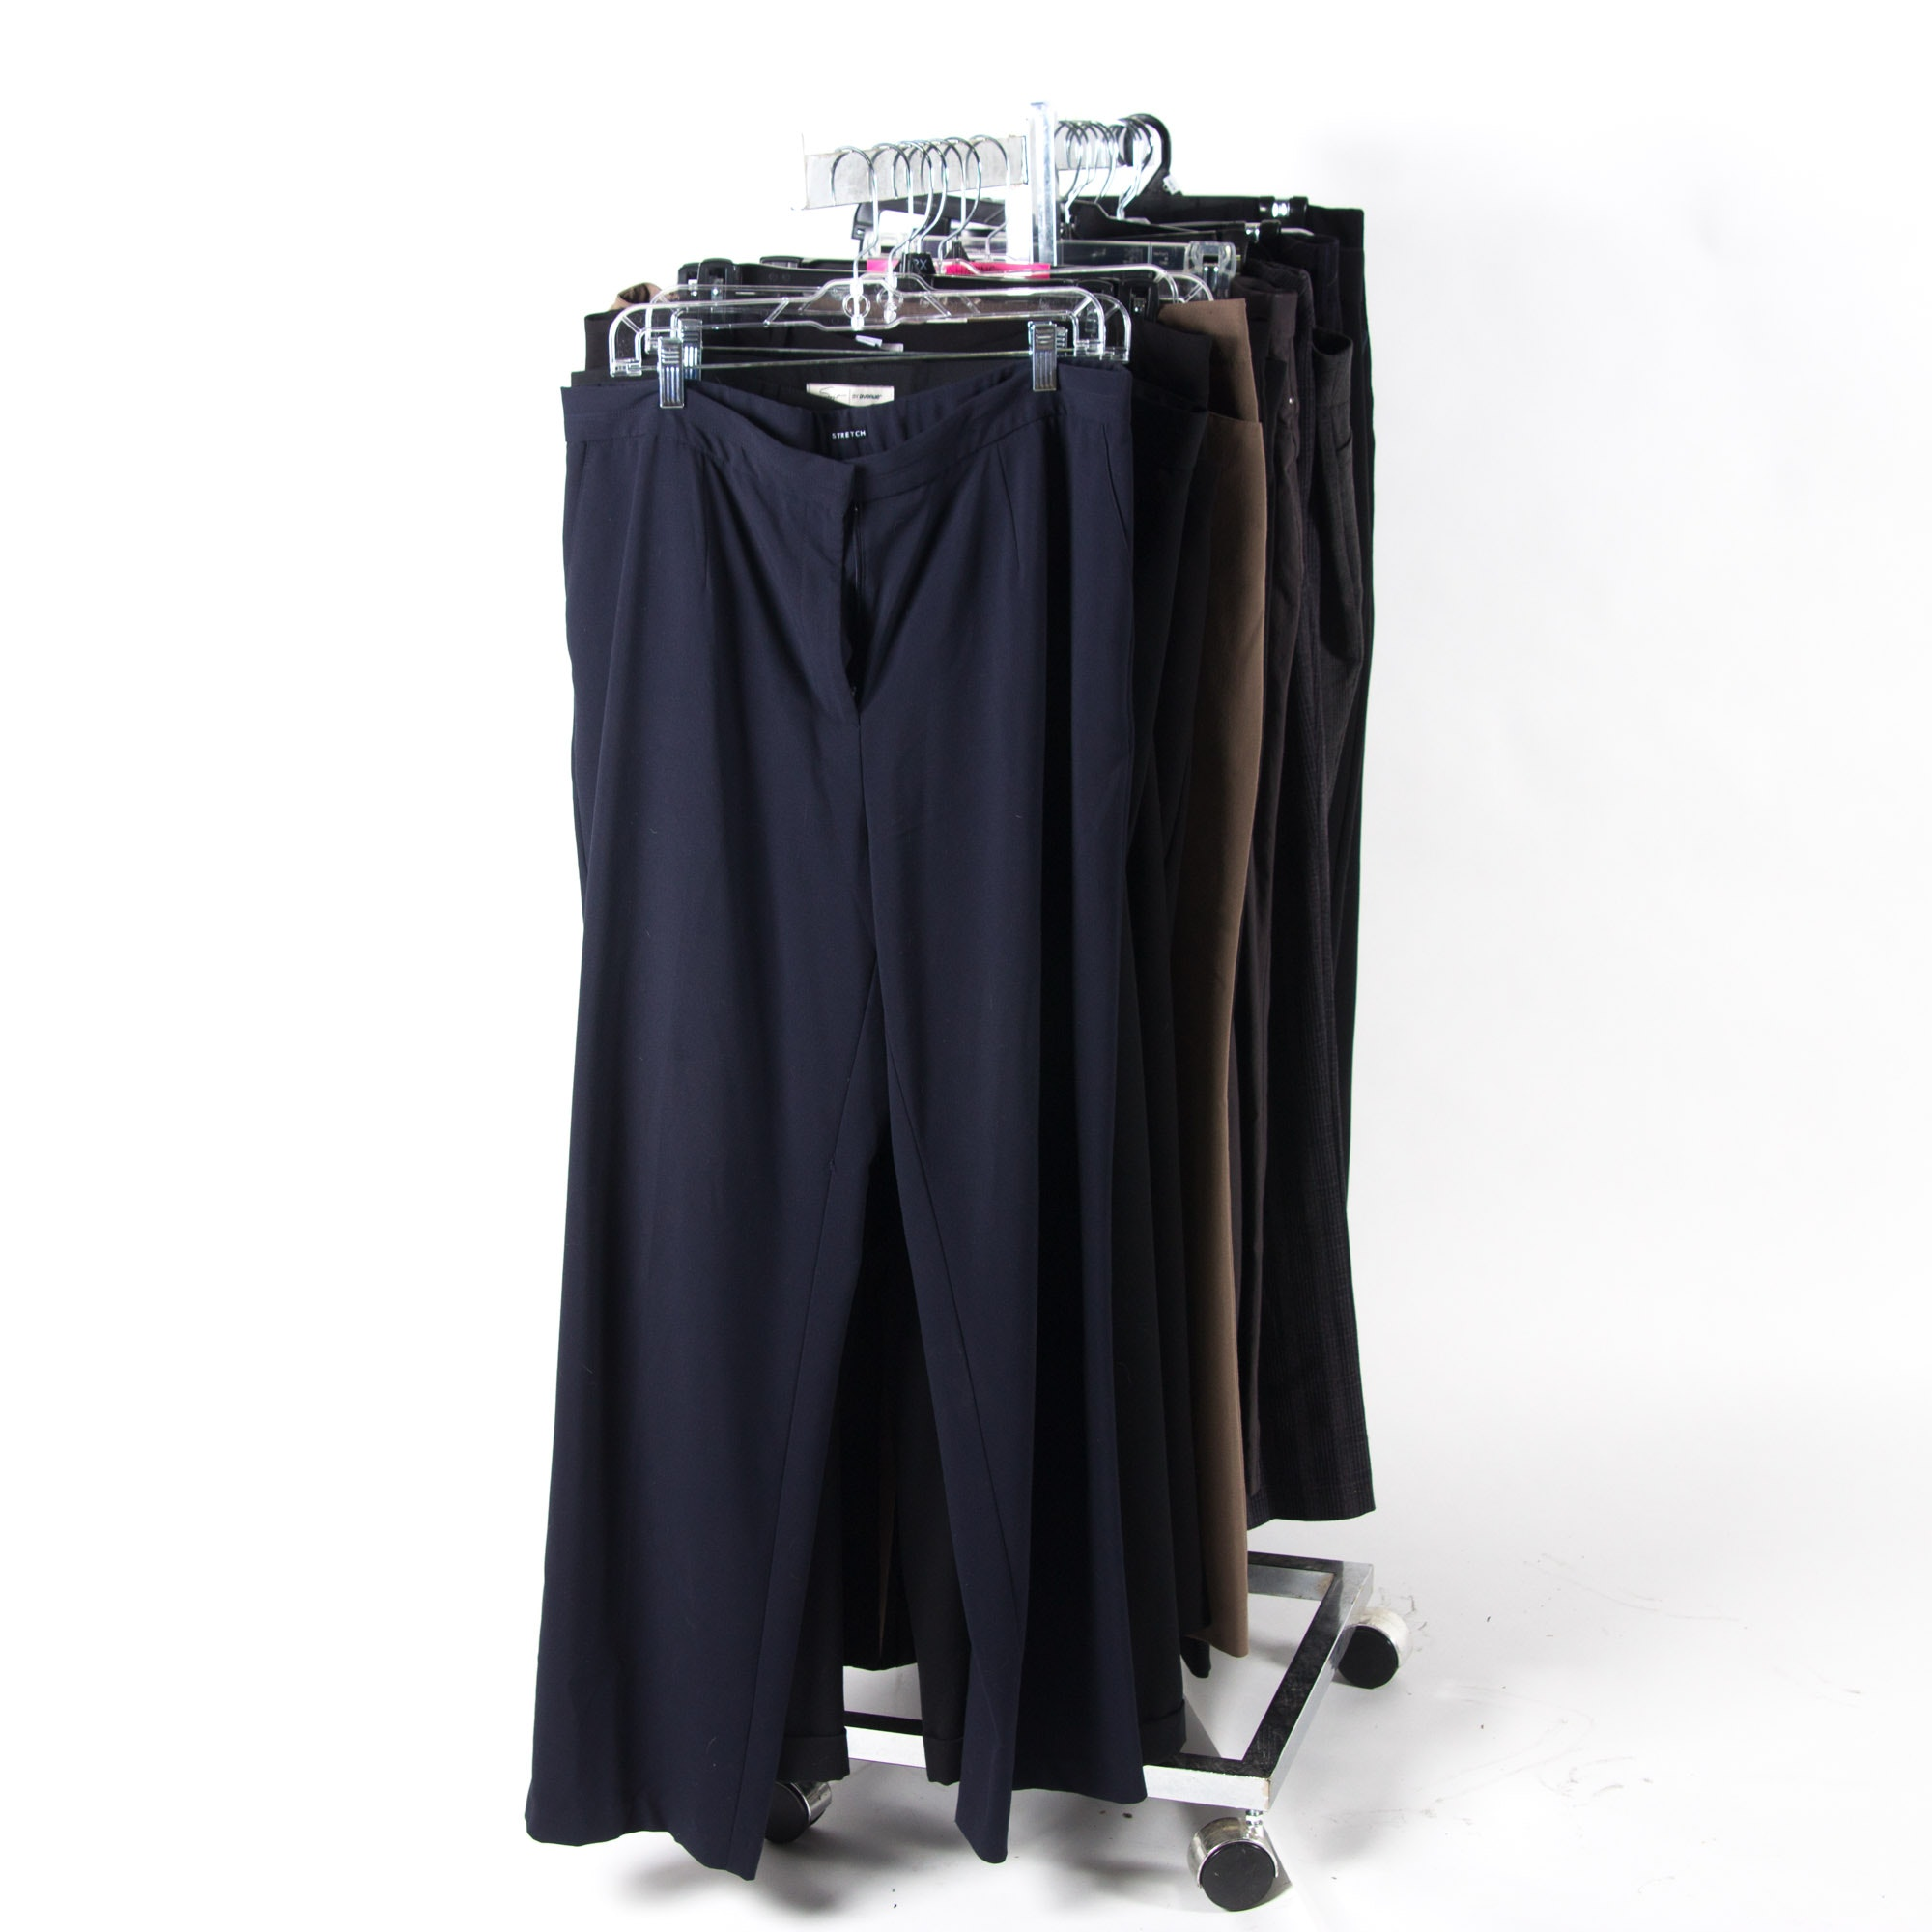 Assortment of Women's Dress Pants Including TravelSmith, Chico's, and More